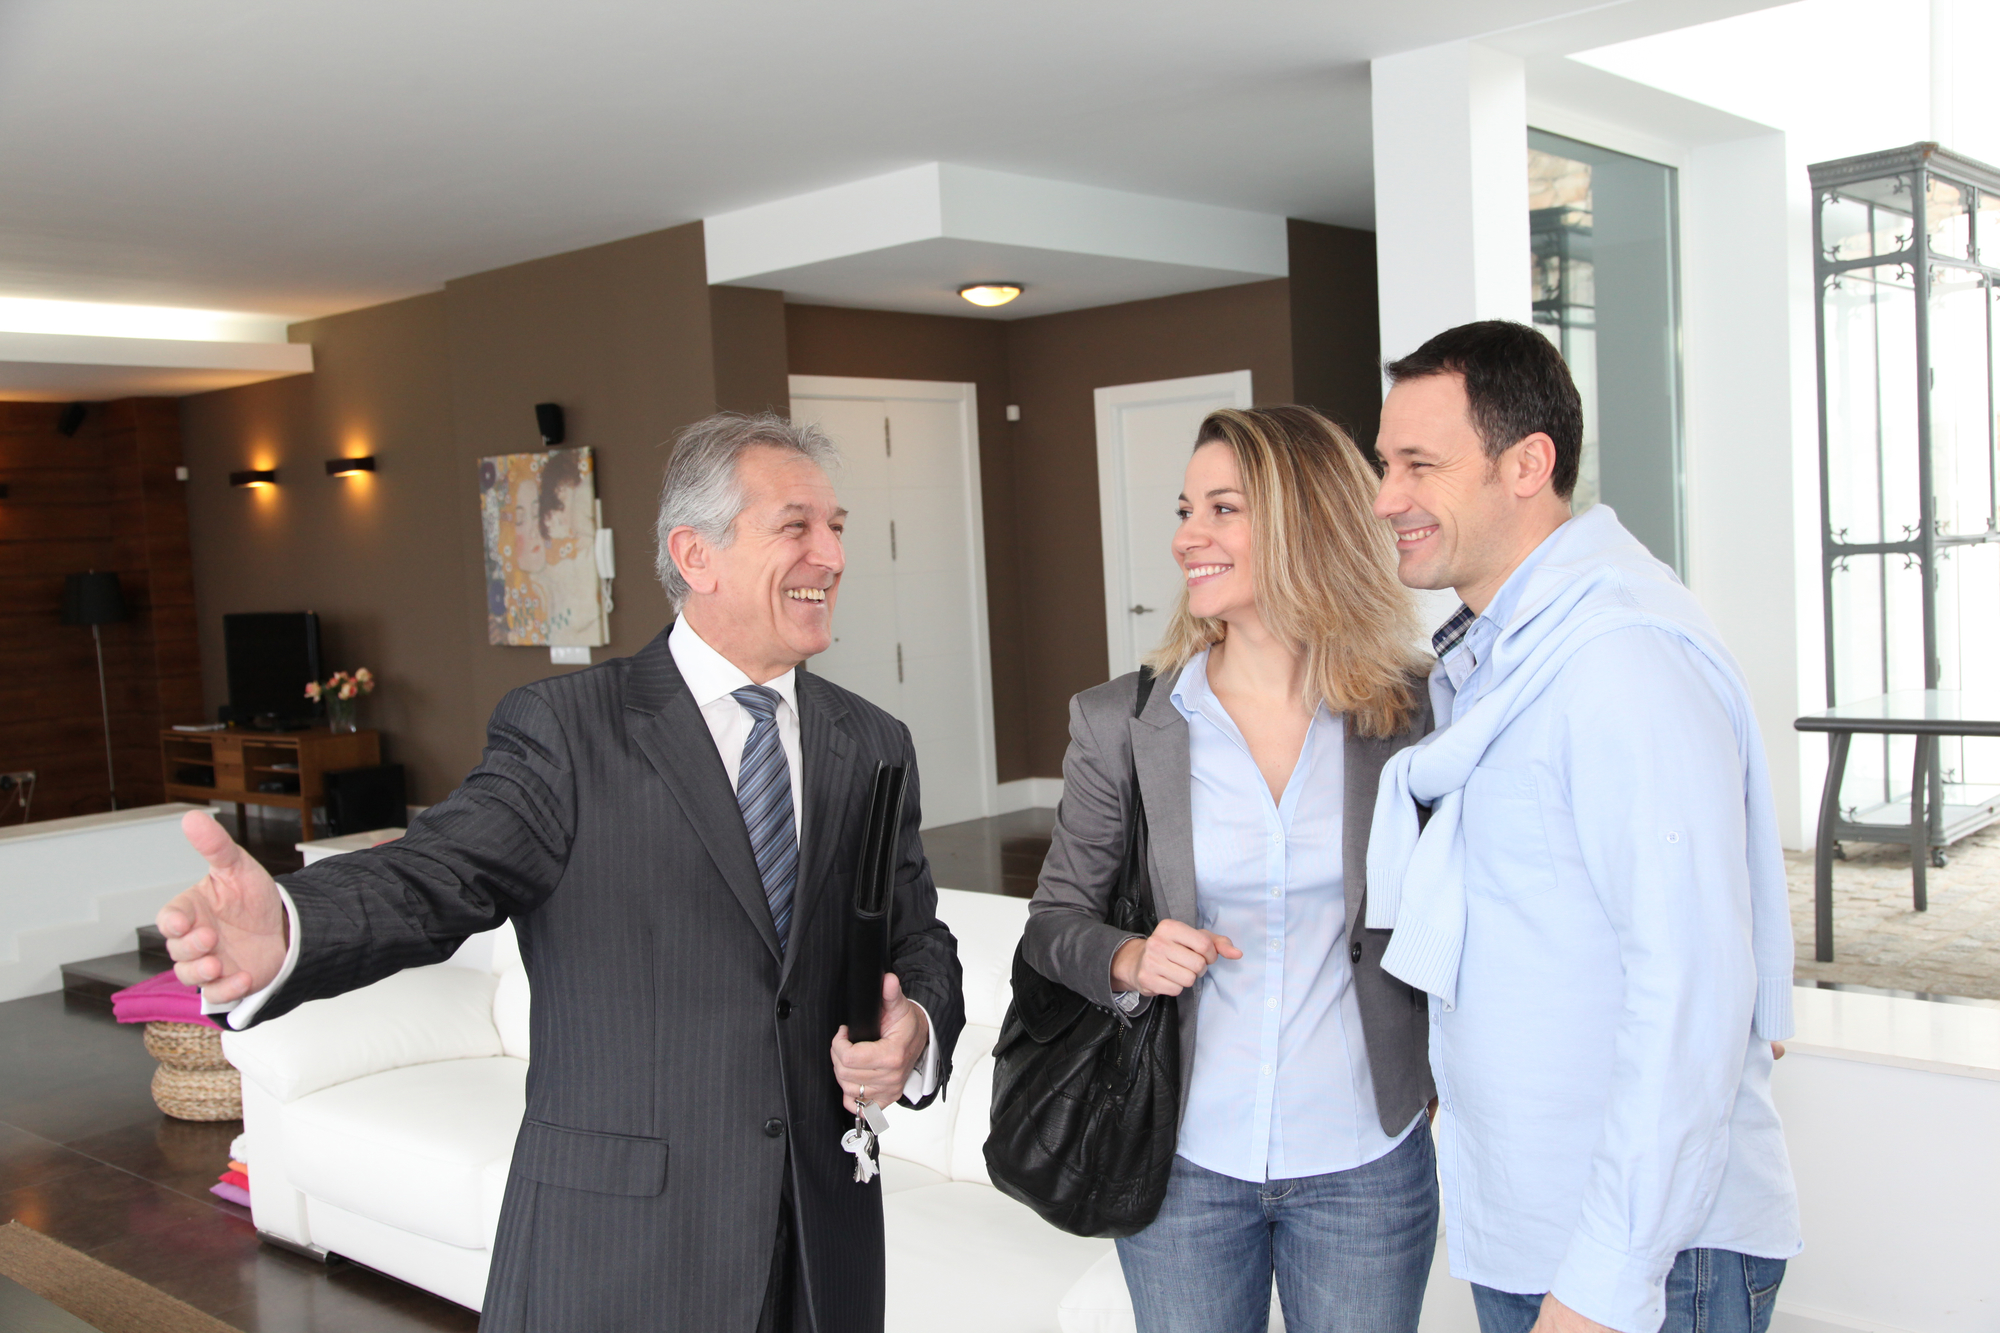 where are the best new homes for sale in west palm beach?